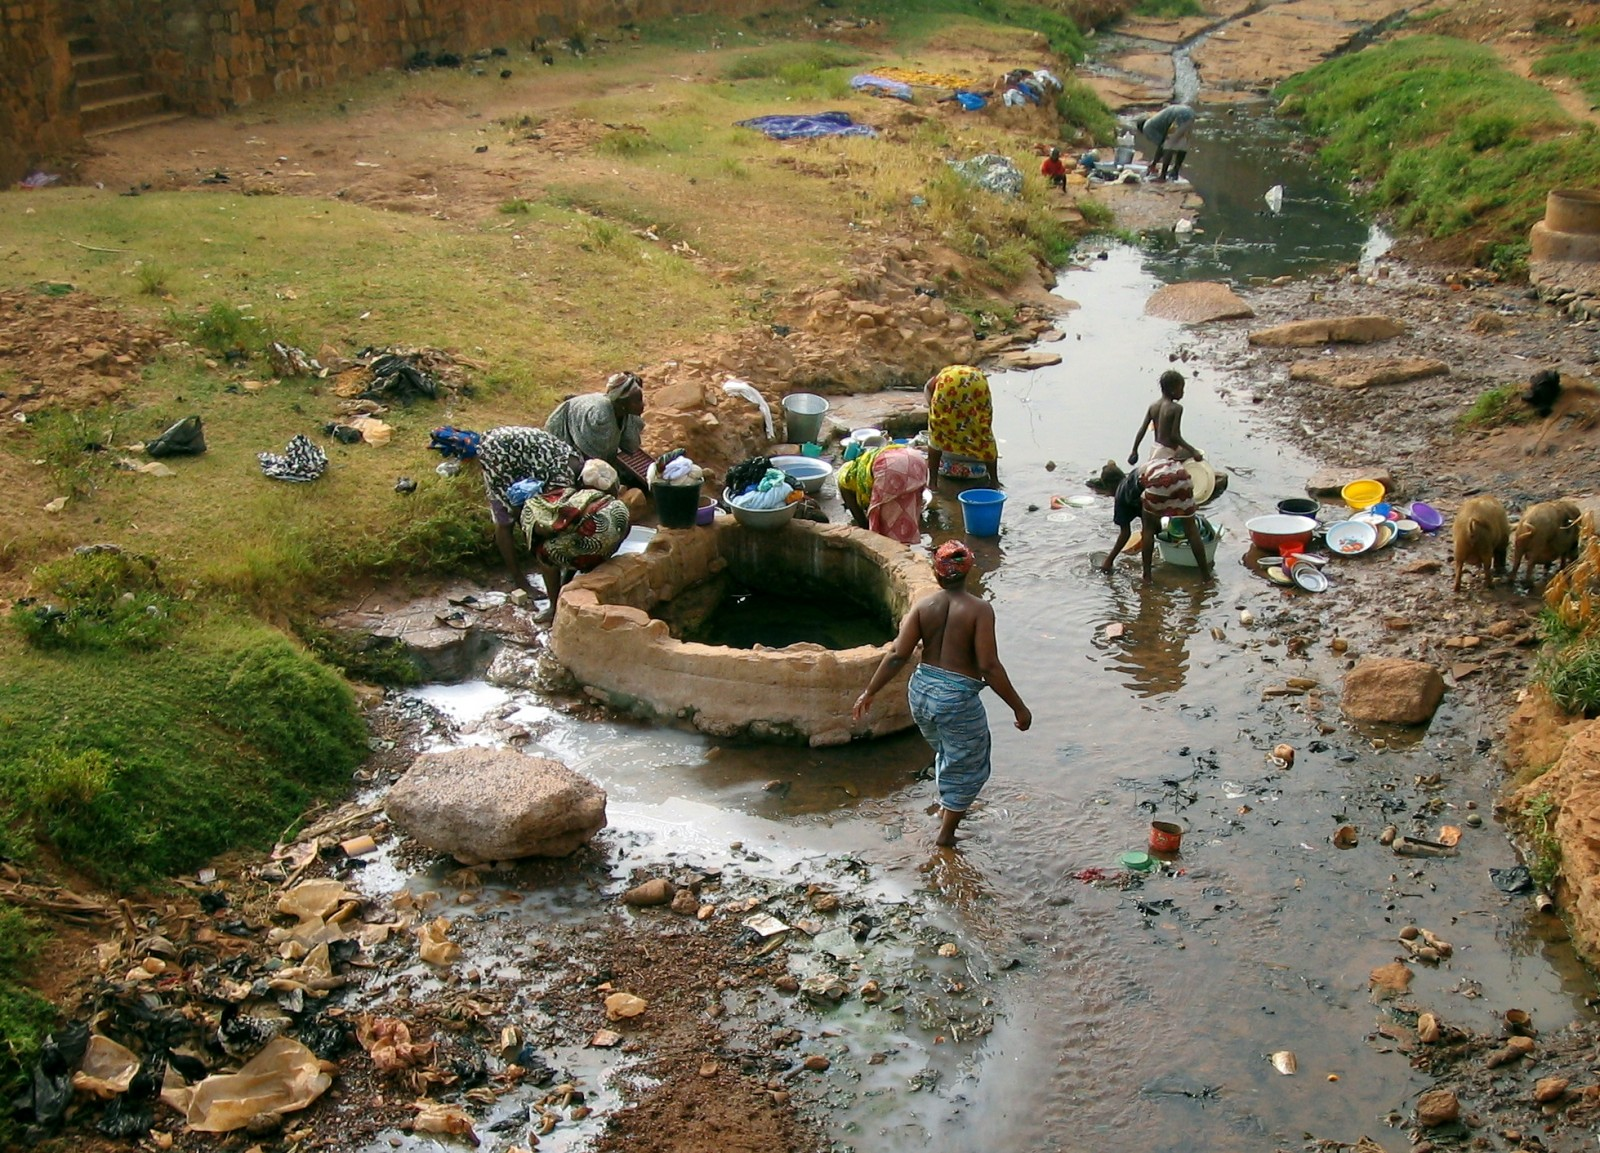 In Burkina Faso, Clean Water Was Scarce. Then the Pandemic Hit. - Circle of Blue